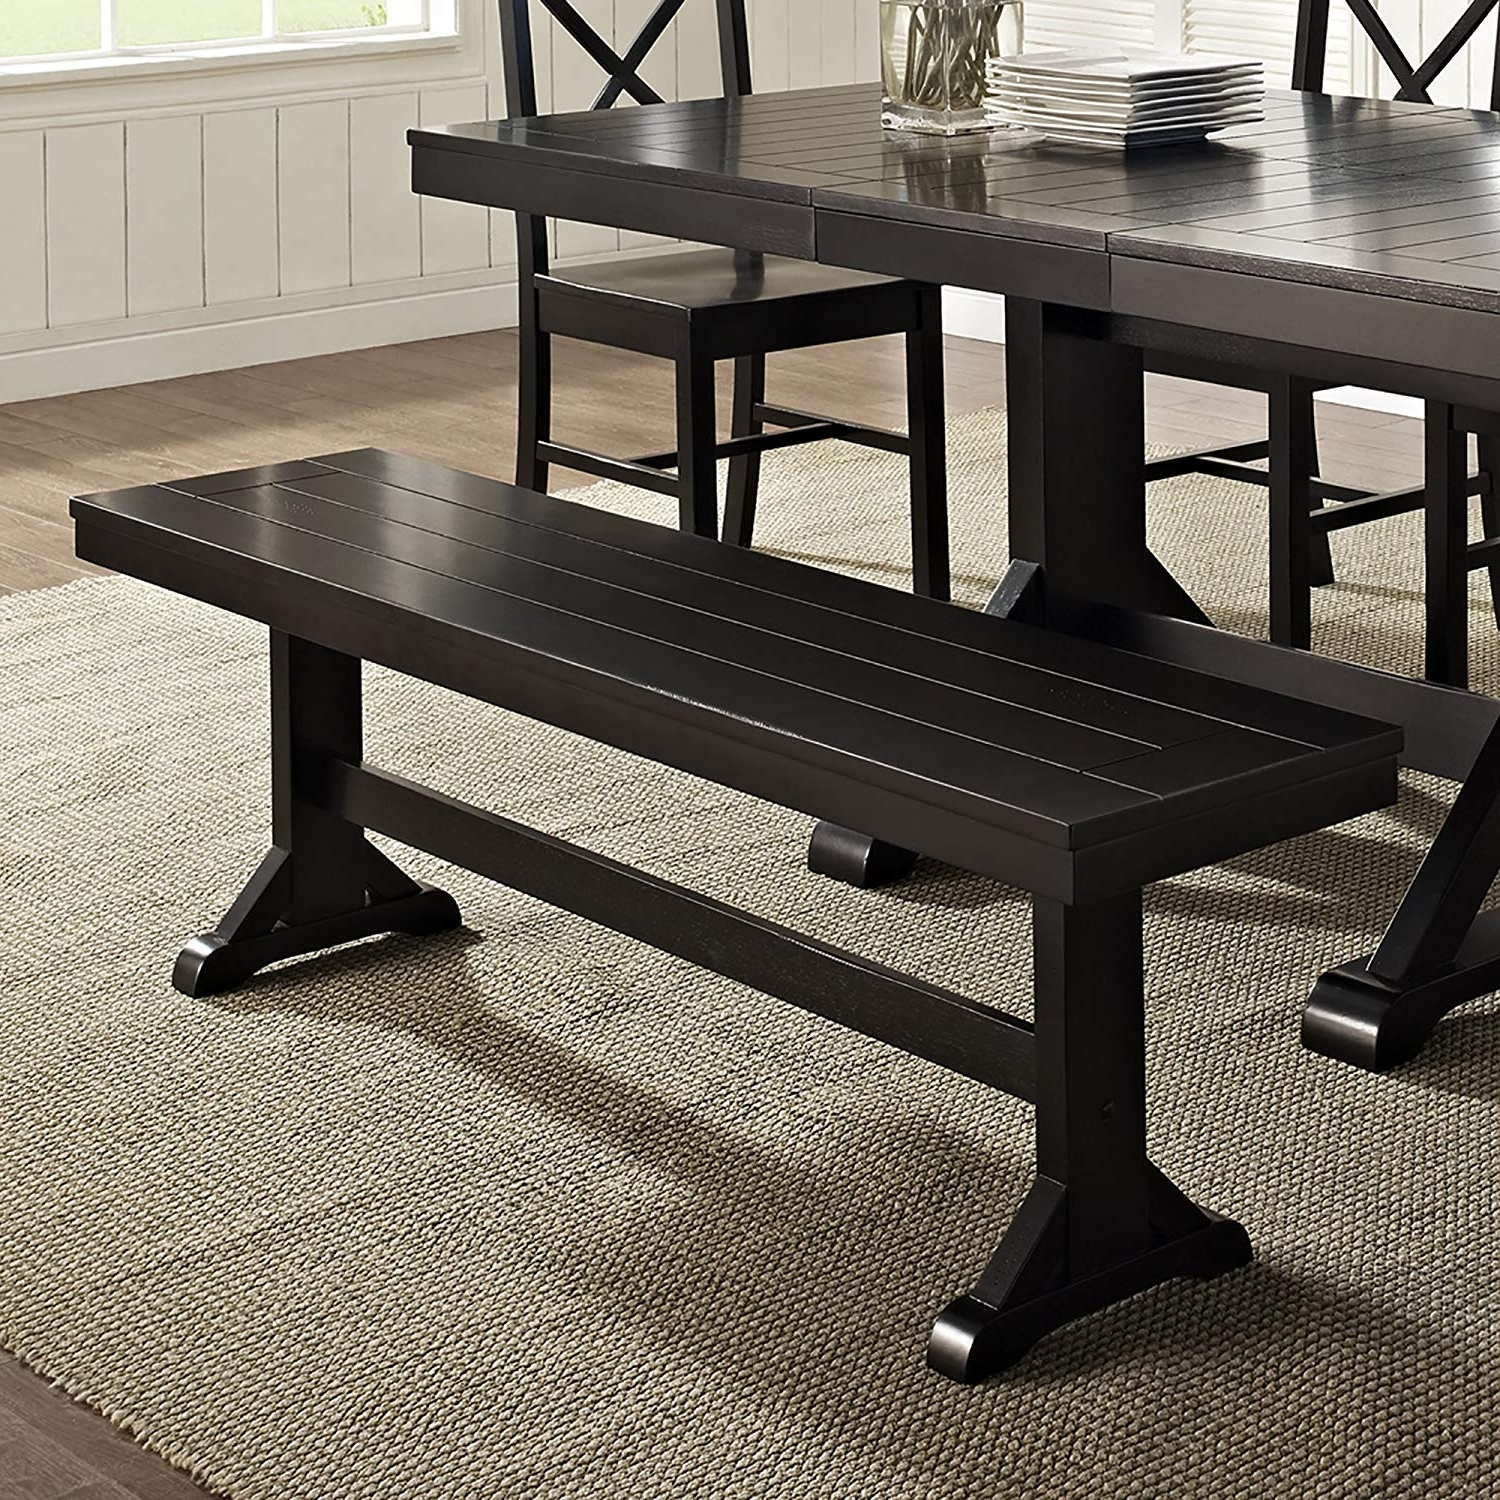 Newest Dining Tables Dark Wood Pertaining To We Furniture Solid Wood Black Dining Bench (View 20 of 25)